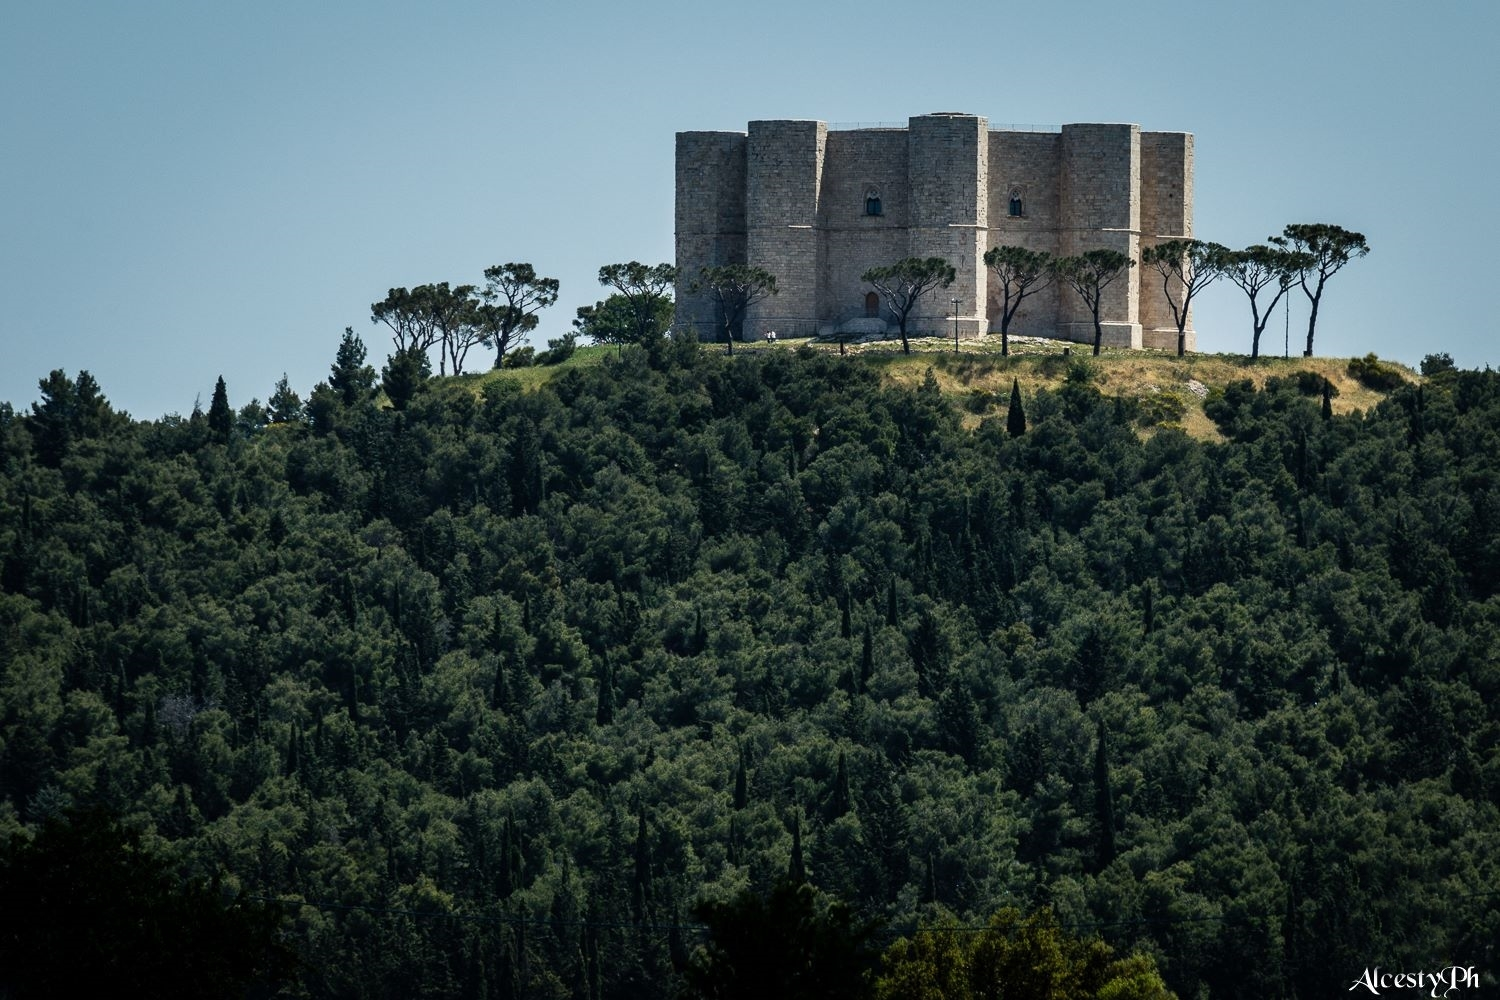 The majestic Castel del Monte castle, a UNESCO heritage